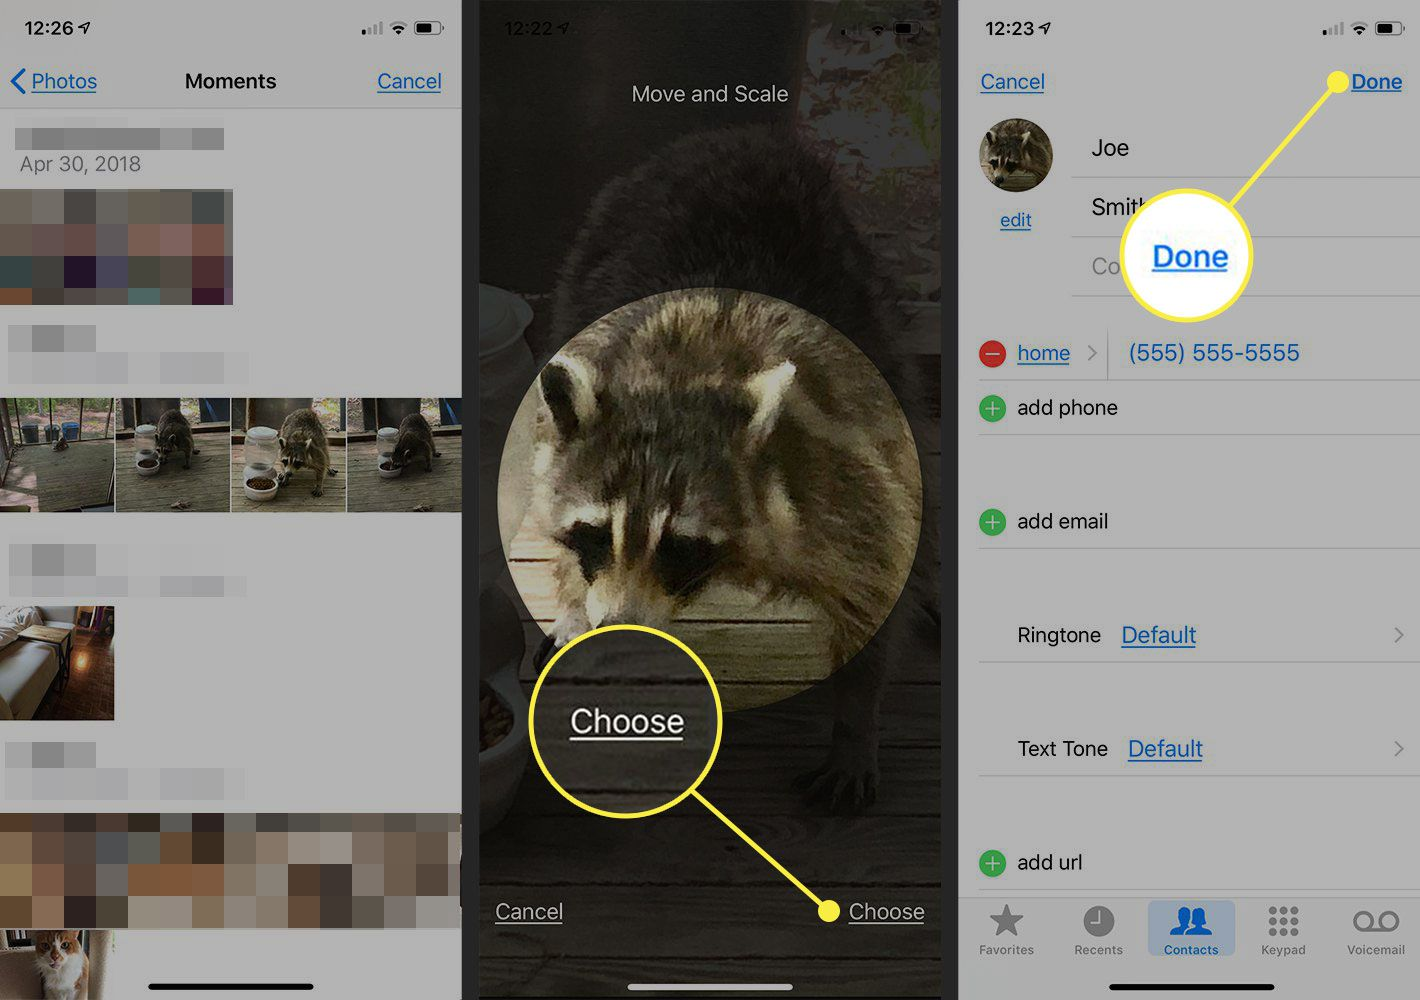 iPhone screenshots showing how to use an existing photo for a contact